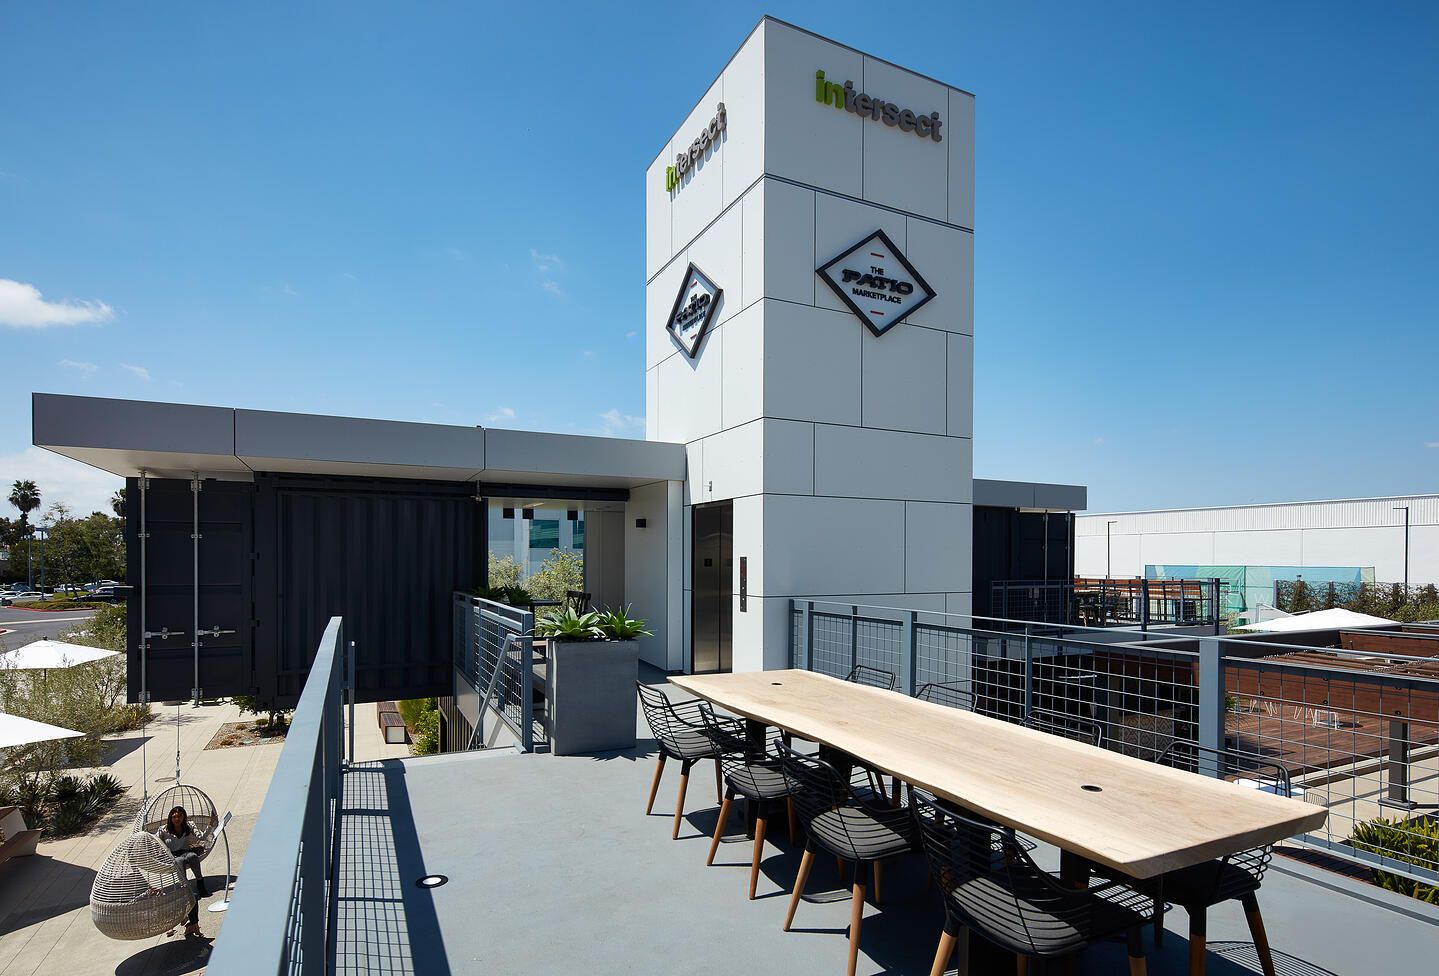 Container Pavilion at Intersect-4-upper level patio